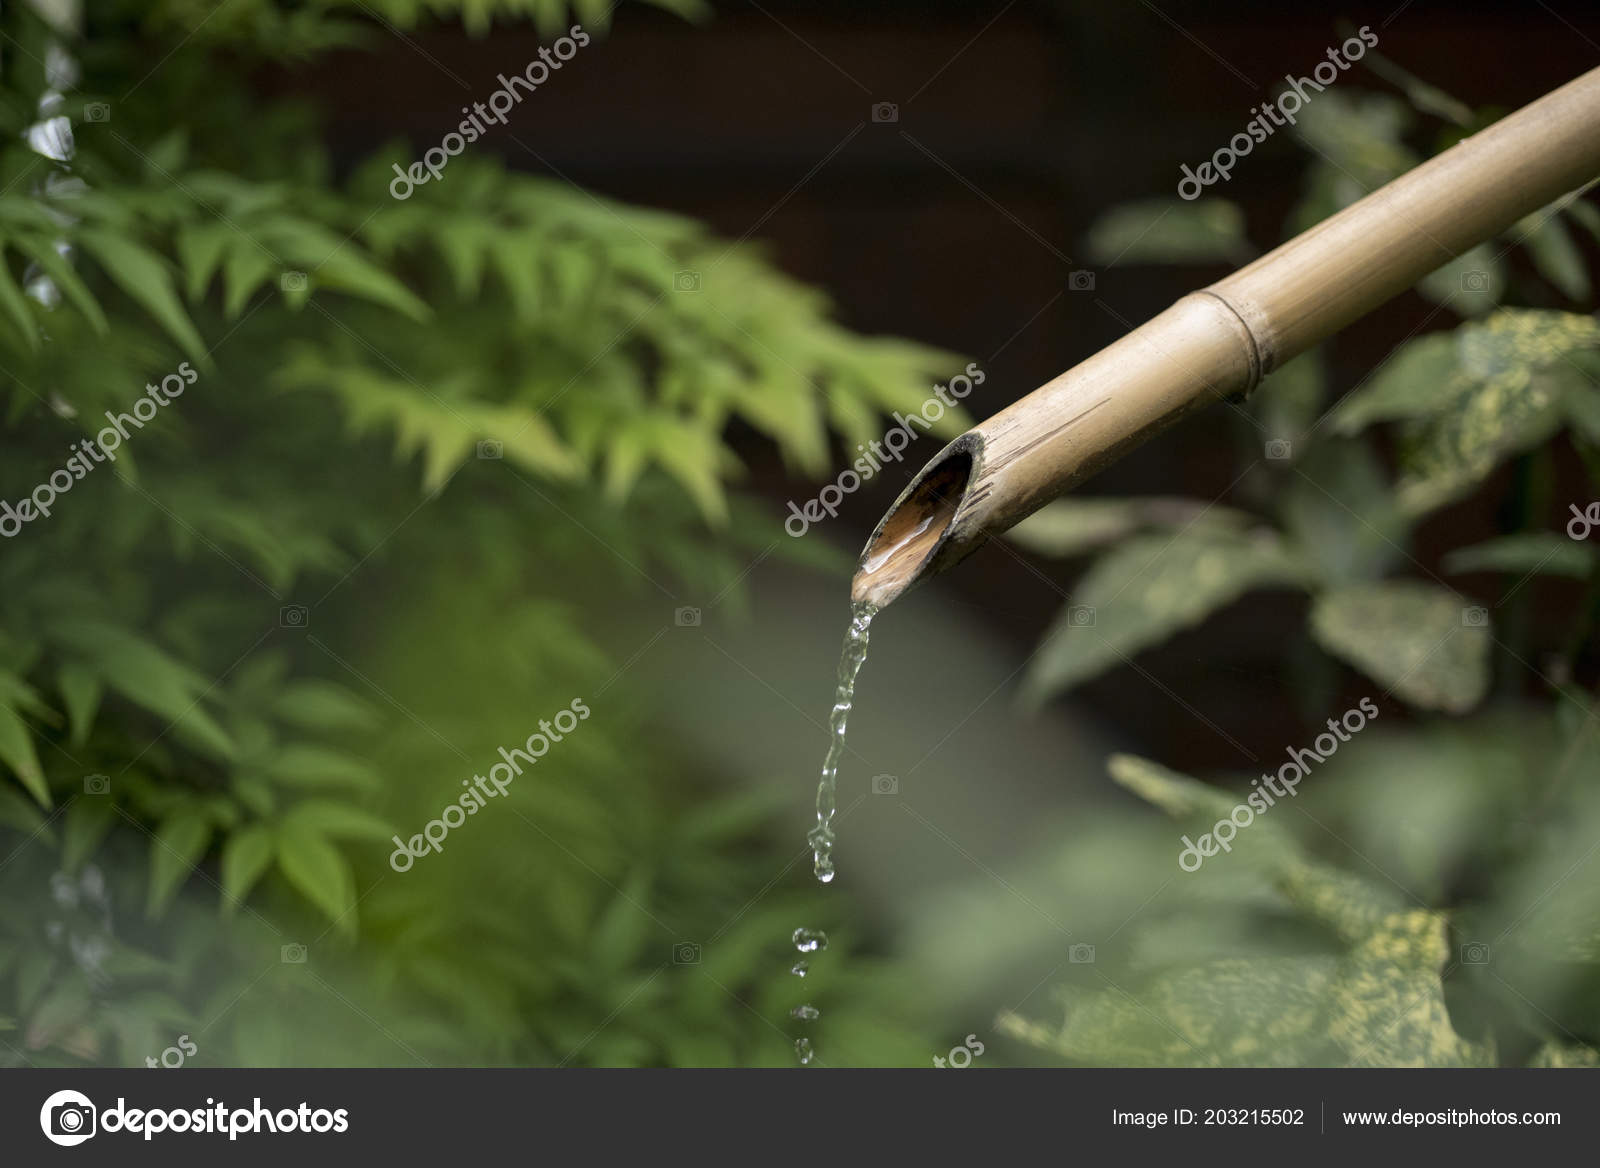 Bamboo Fountain Pouring Water Green Nature Background Traditional Japanese Garden Stock Photo